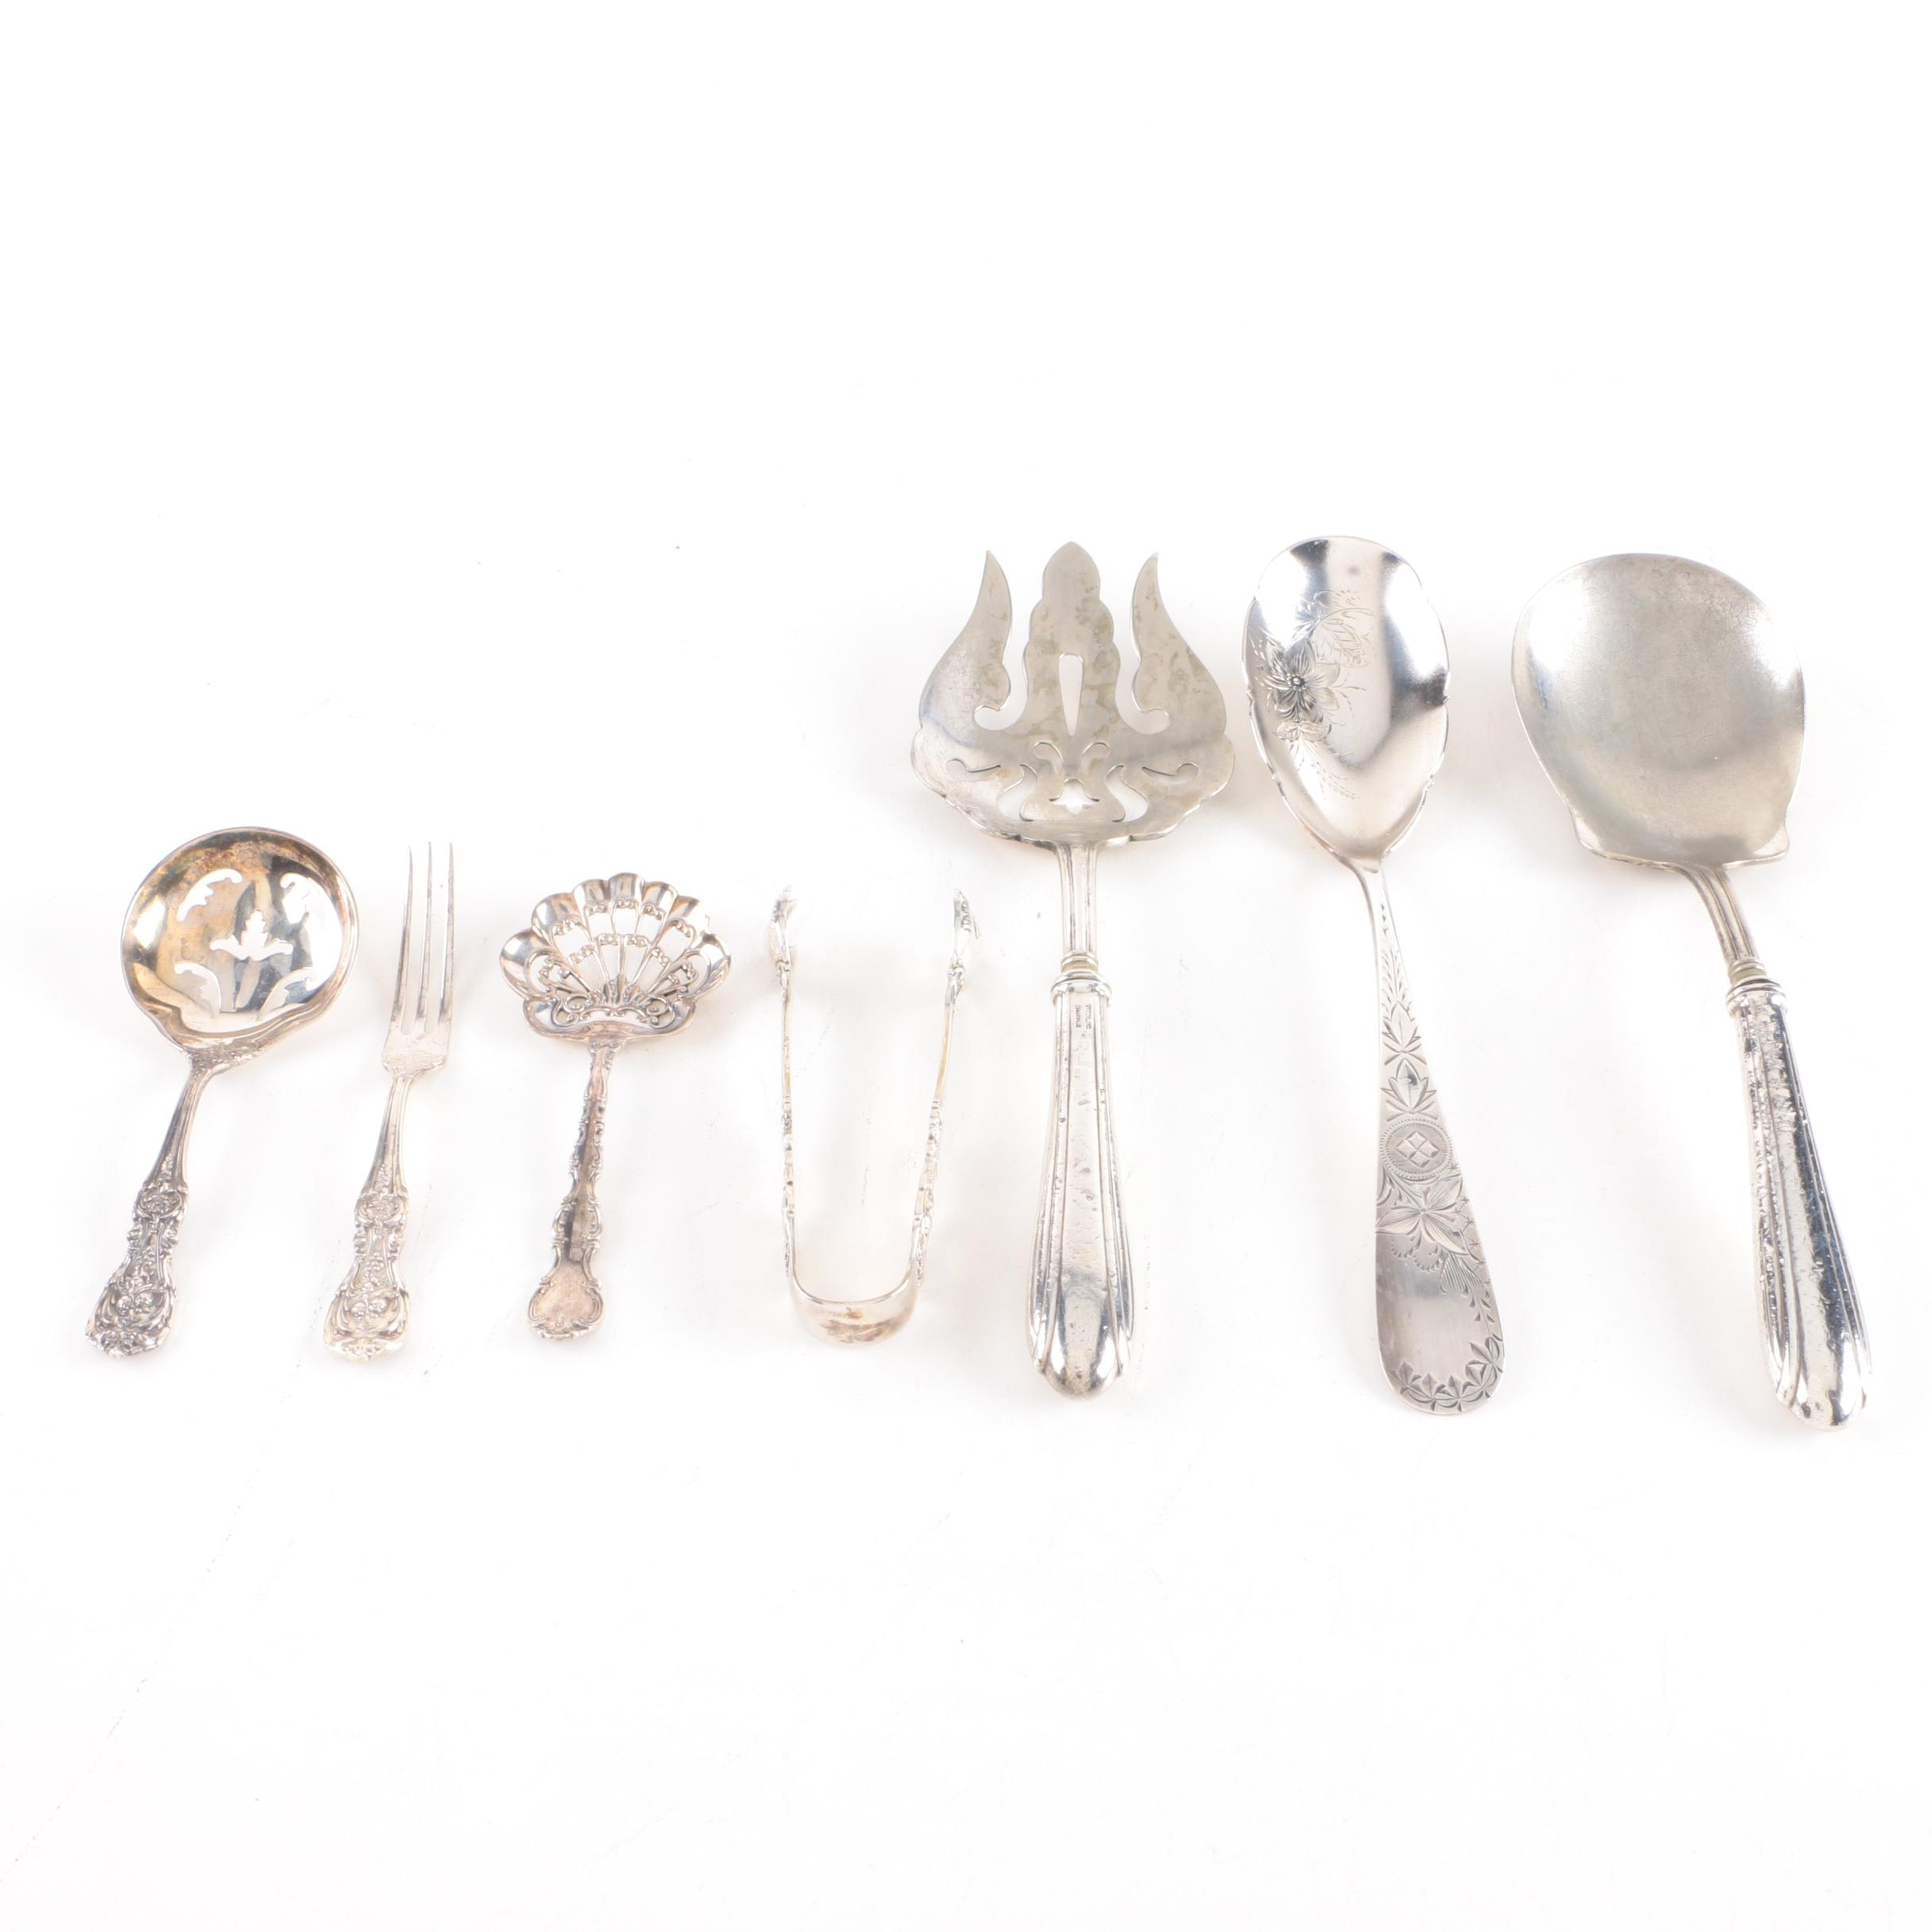 """Reed & Barton """"Francis I"""" Sterling Silver Tongs and Assorted Sterling Utensils"""